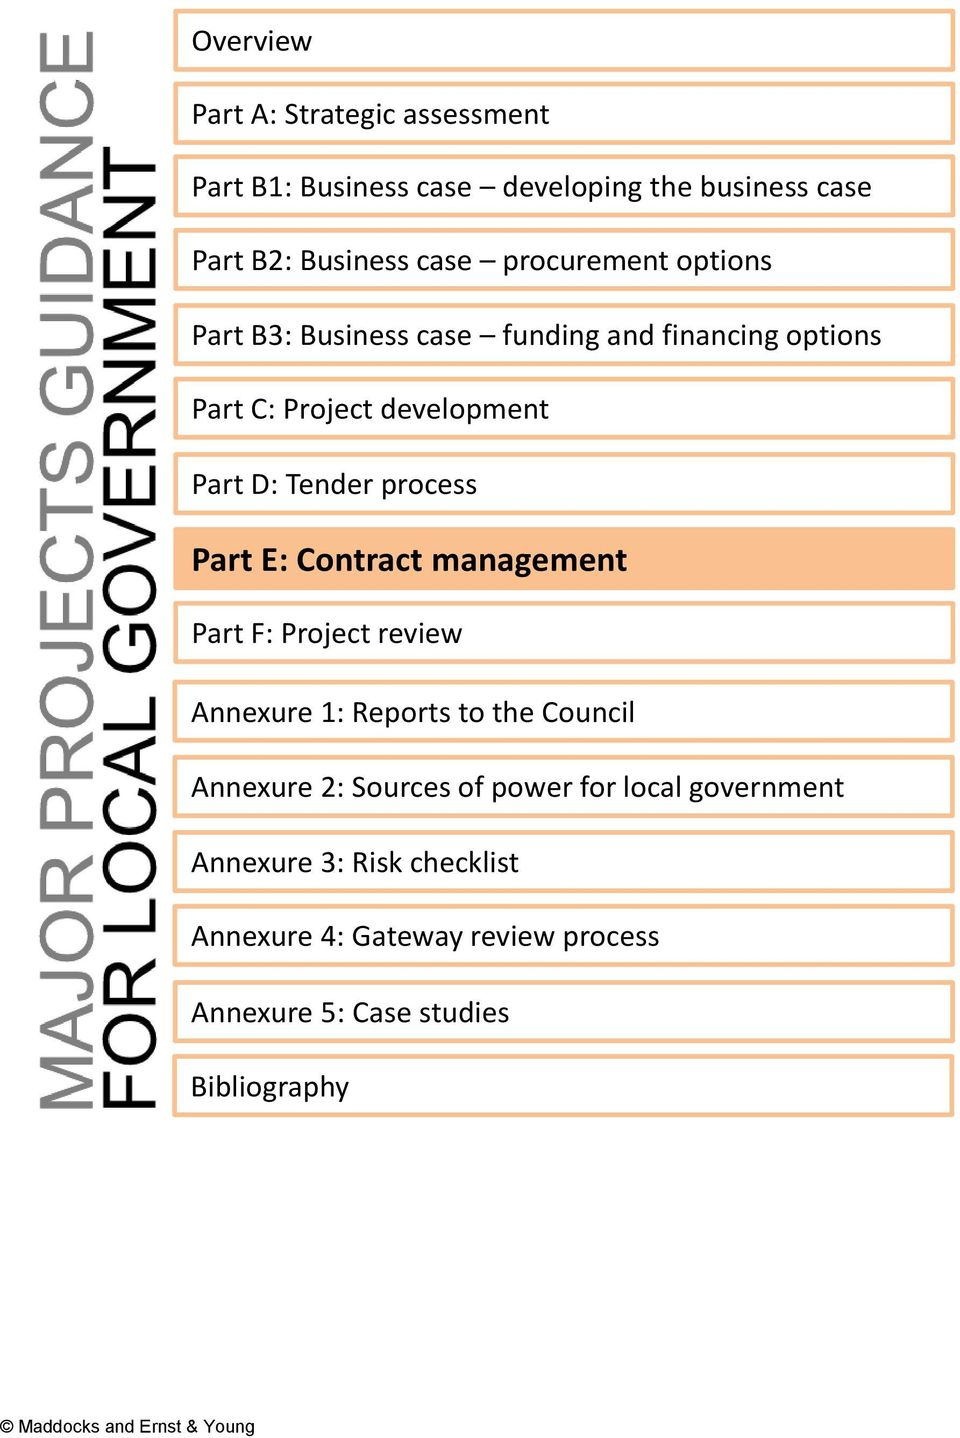 Contract management Part F: Project review Annexure 1: Reports to the Council Annexure 2: Sources of power for local